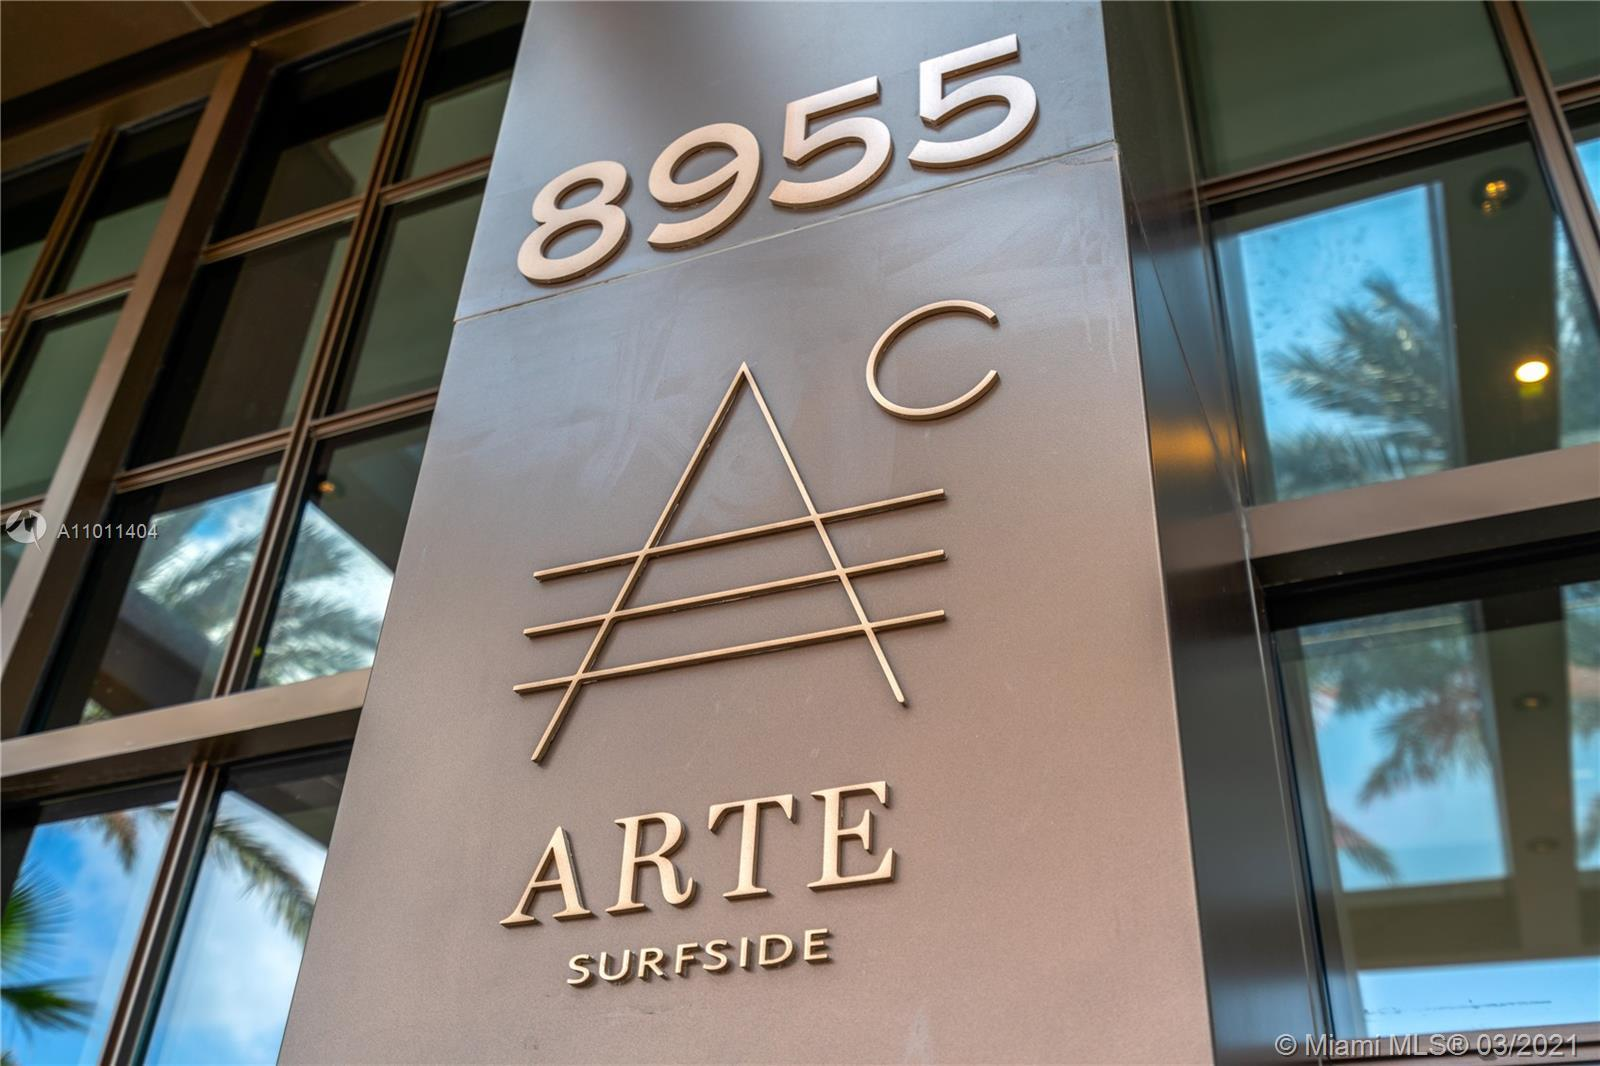 ARTE, a boutique collection of 16 oceanfront residences by Citterio & Viel in collaboration with Kob